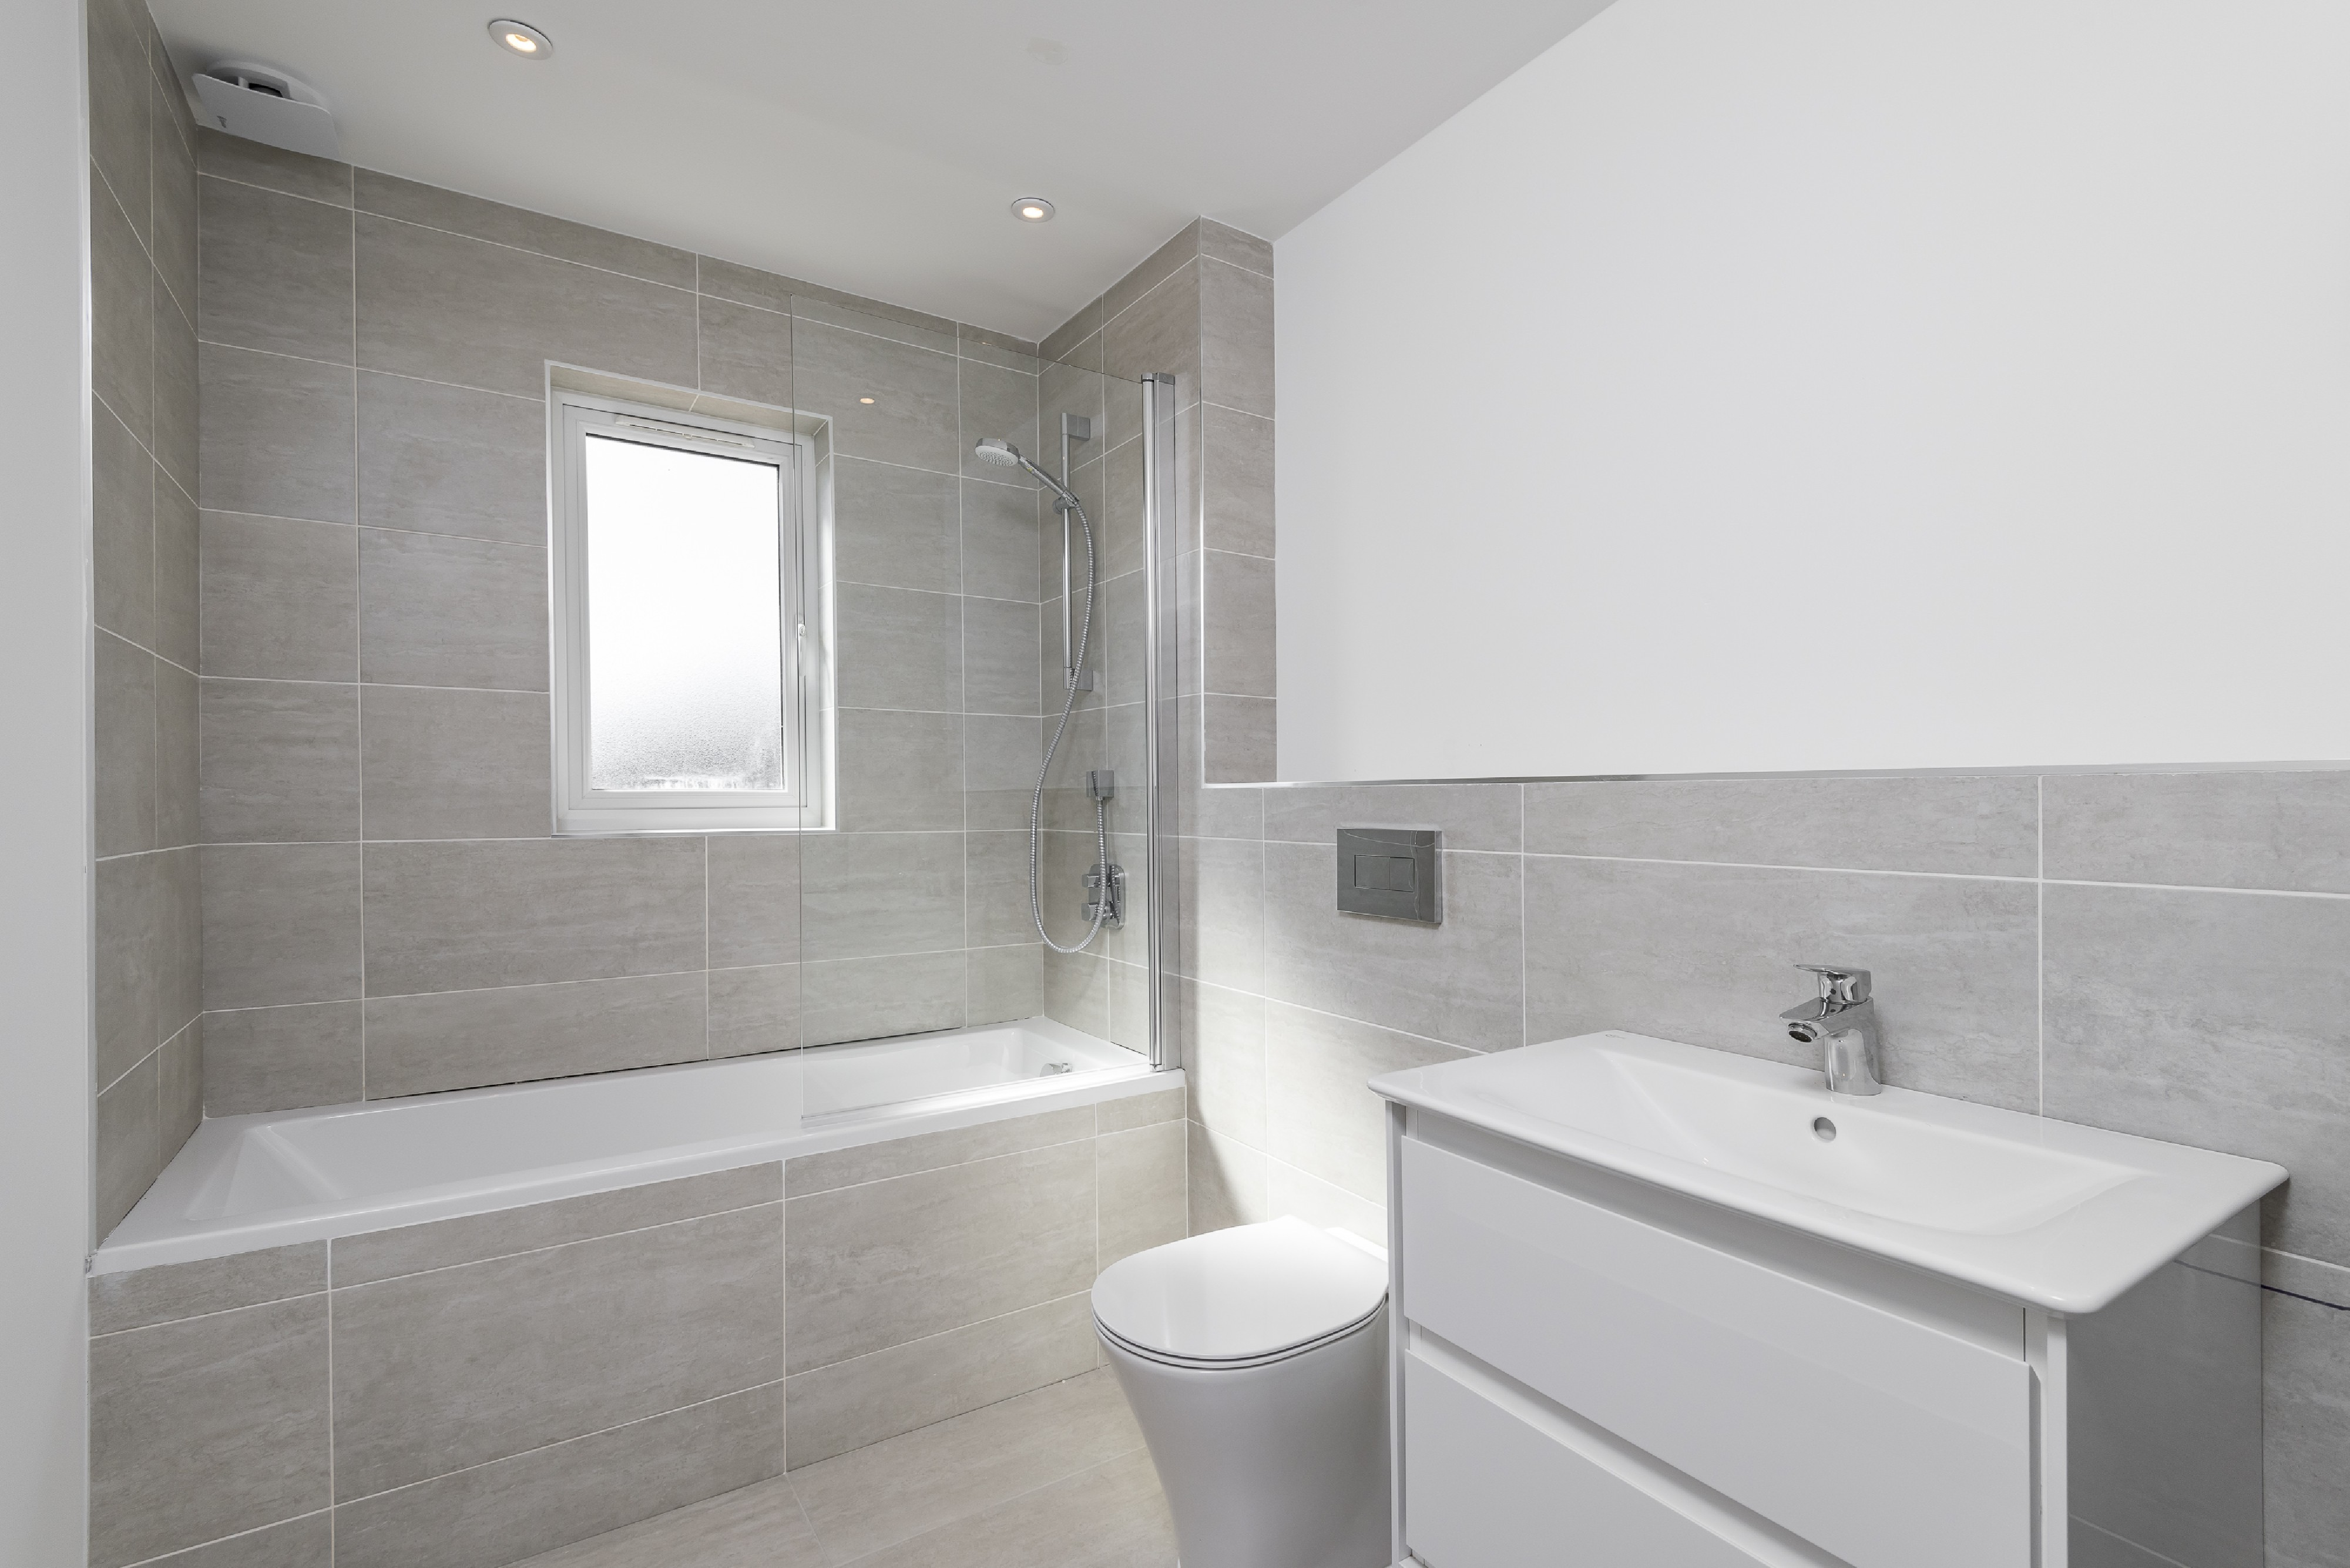 FMV Tilling Services for bathrooms in Redhill